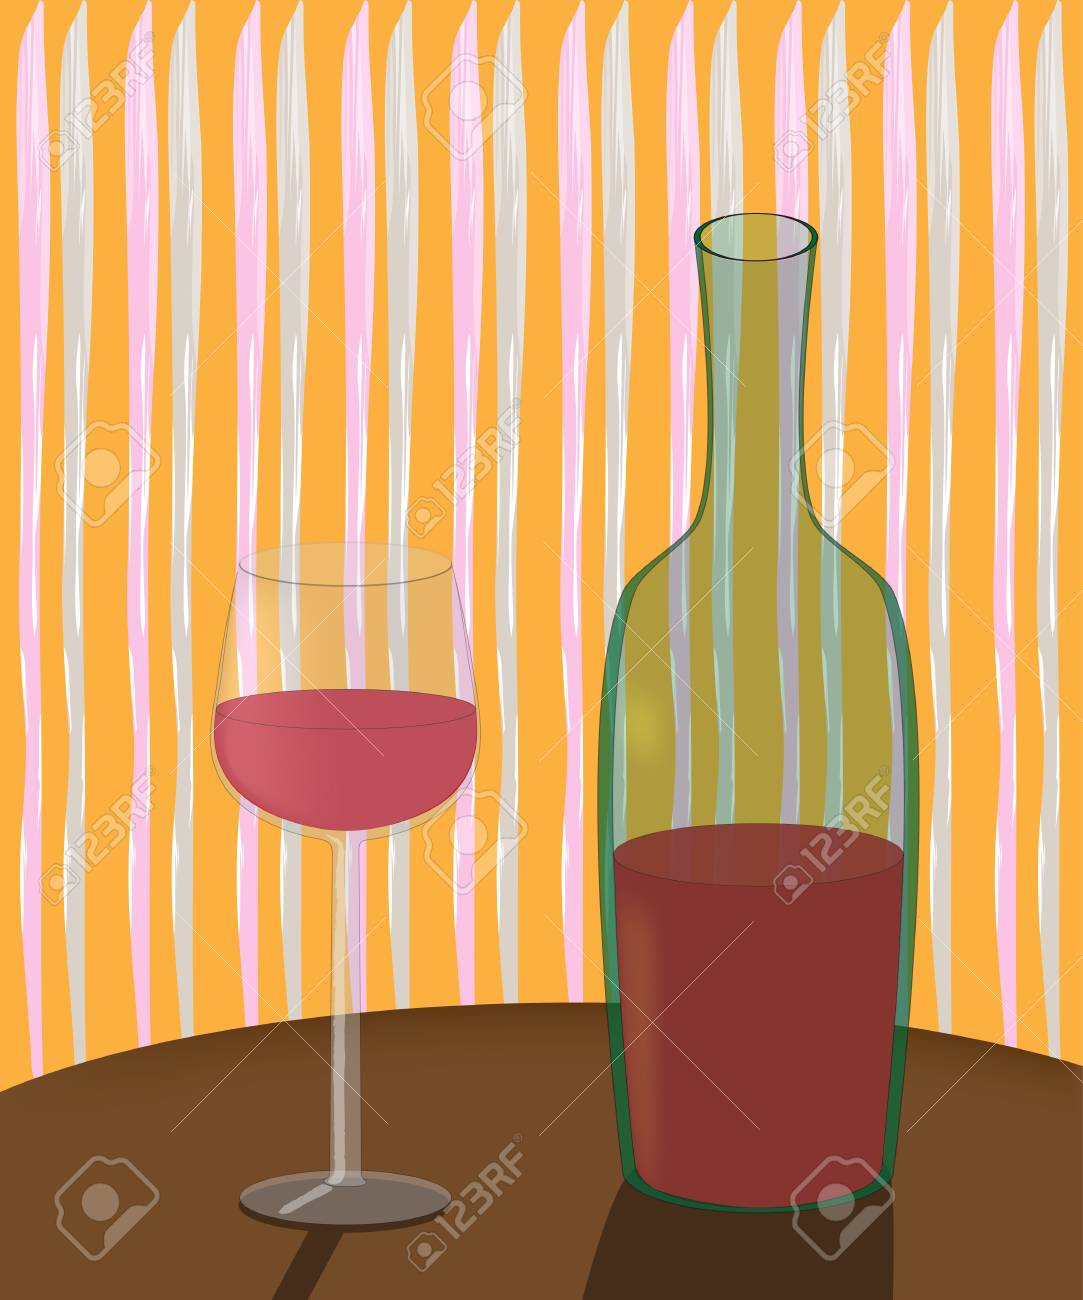 a bottle of wine and a glass on the table in an inexpensive cafe - 51786170